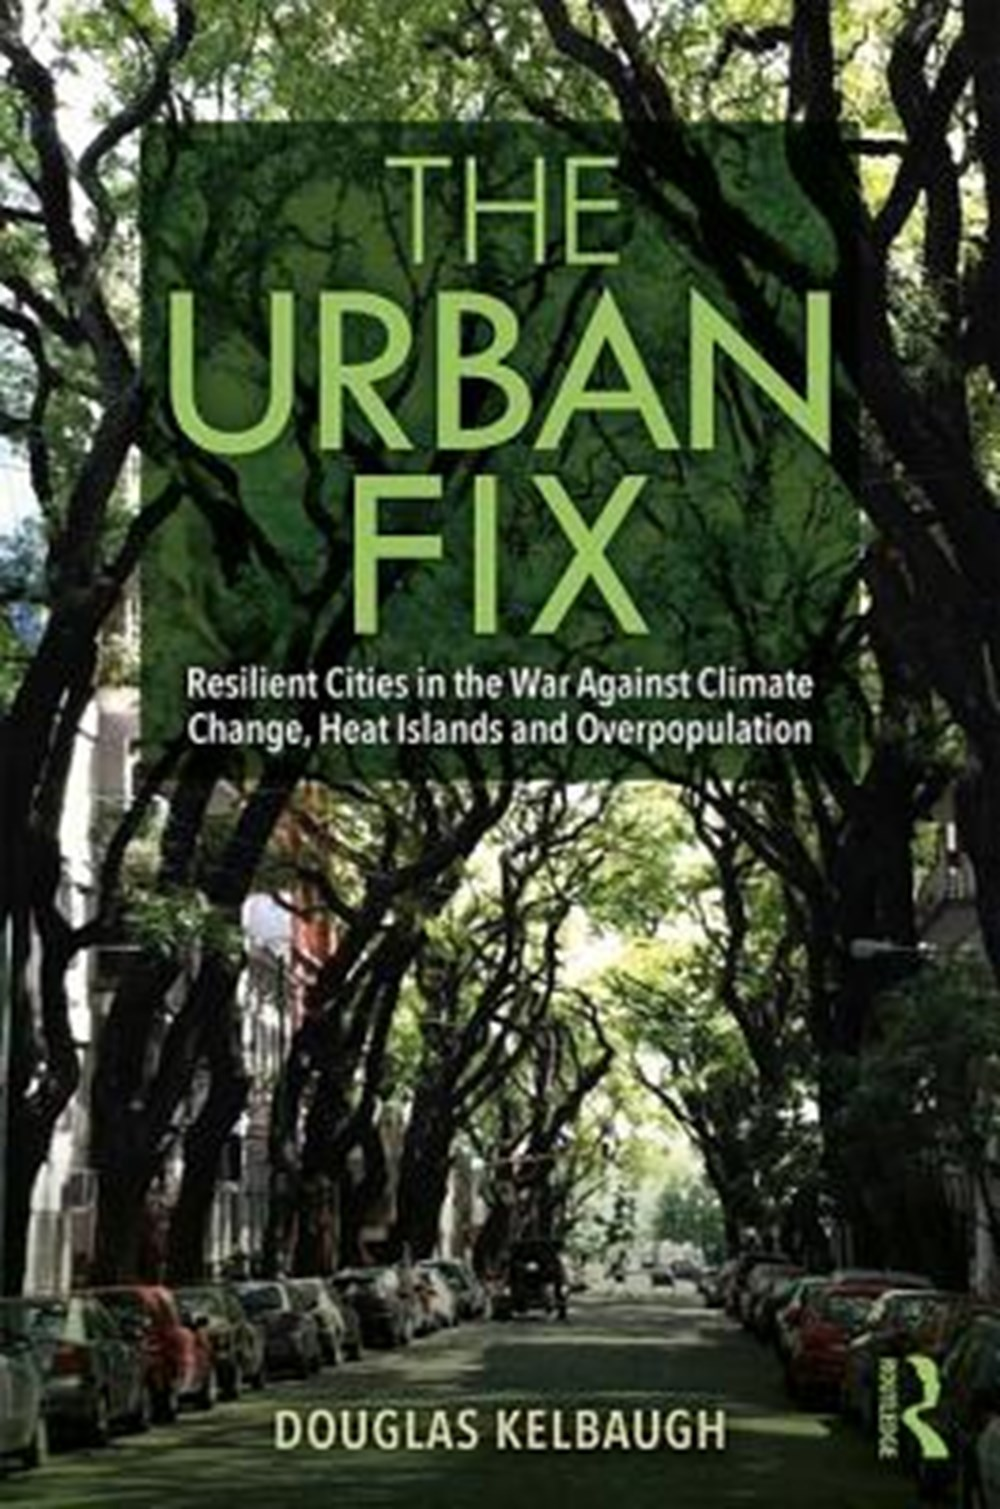 Urban Fix Resilient Cities in the War Against Climate Change, Heat Islands and Overpopulation